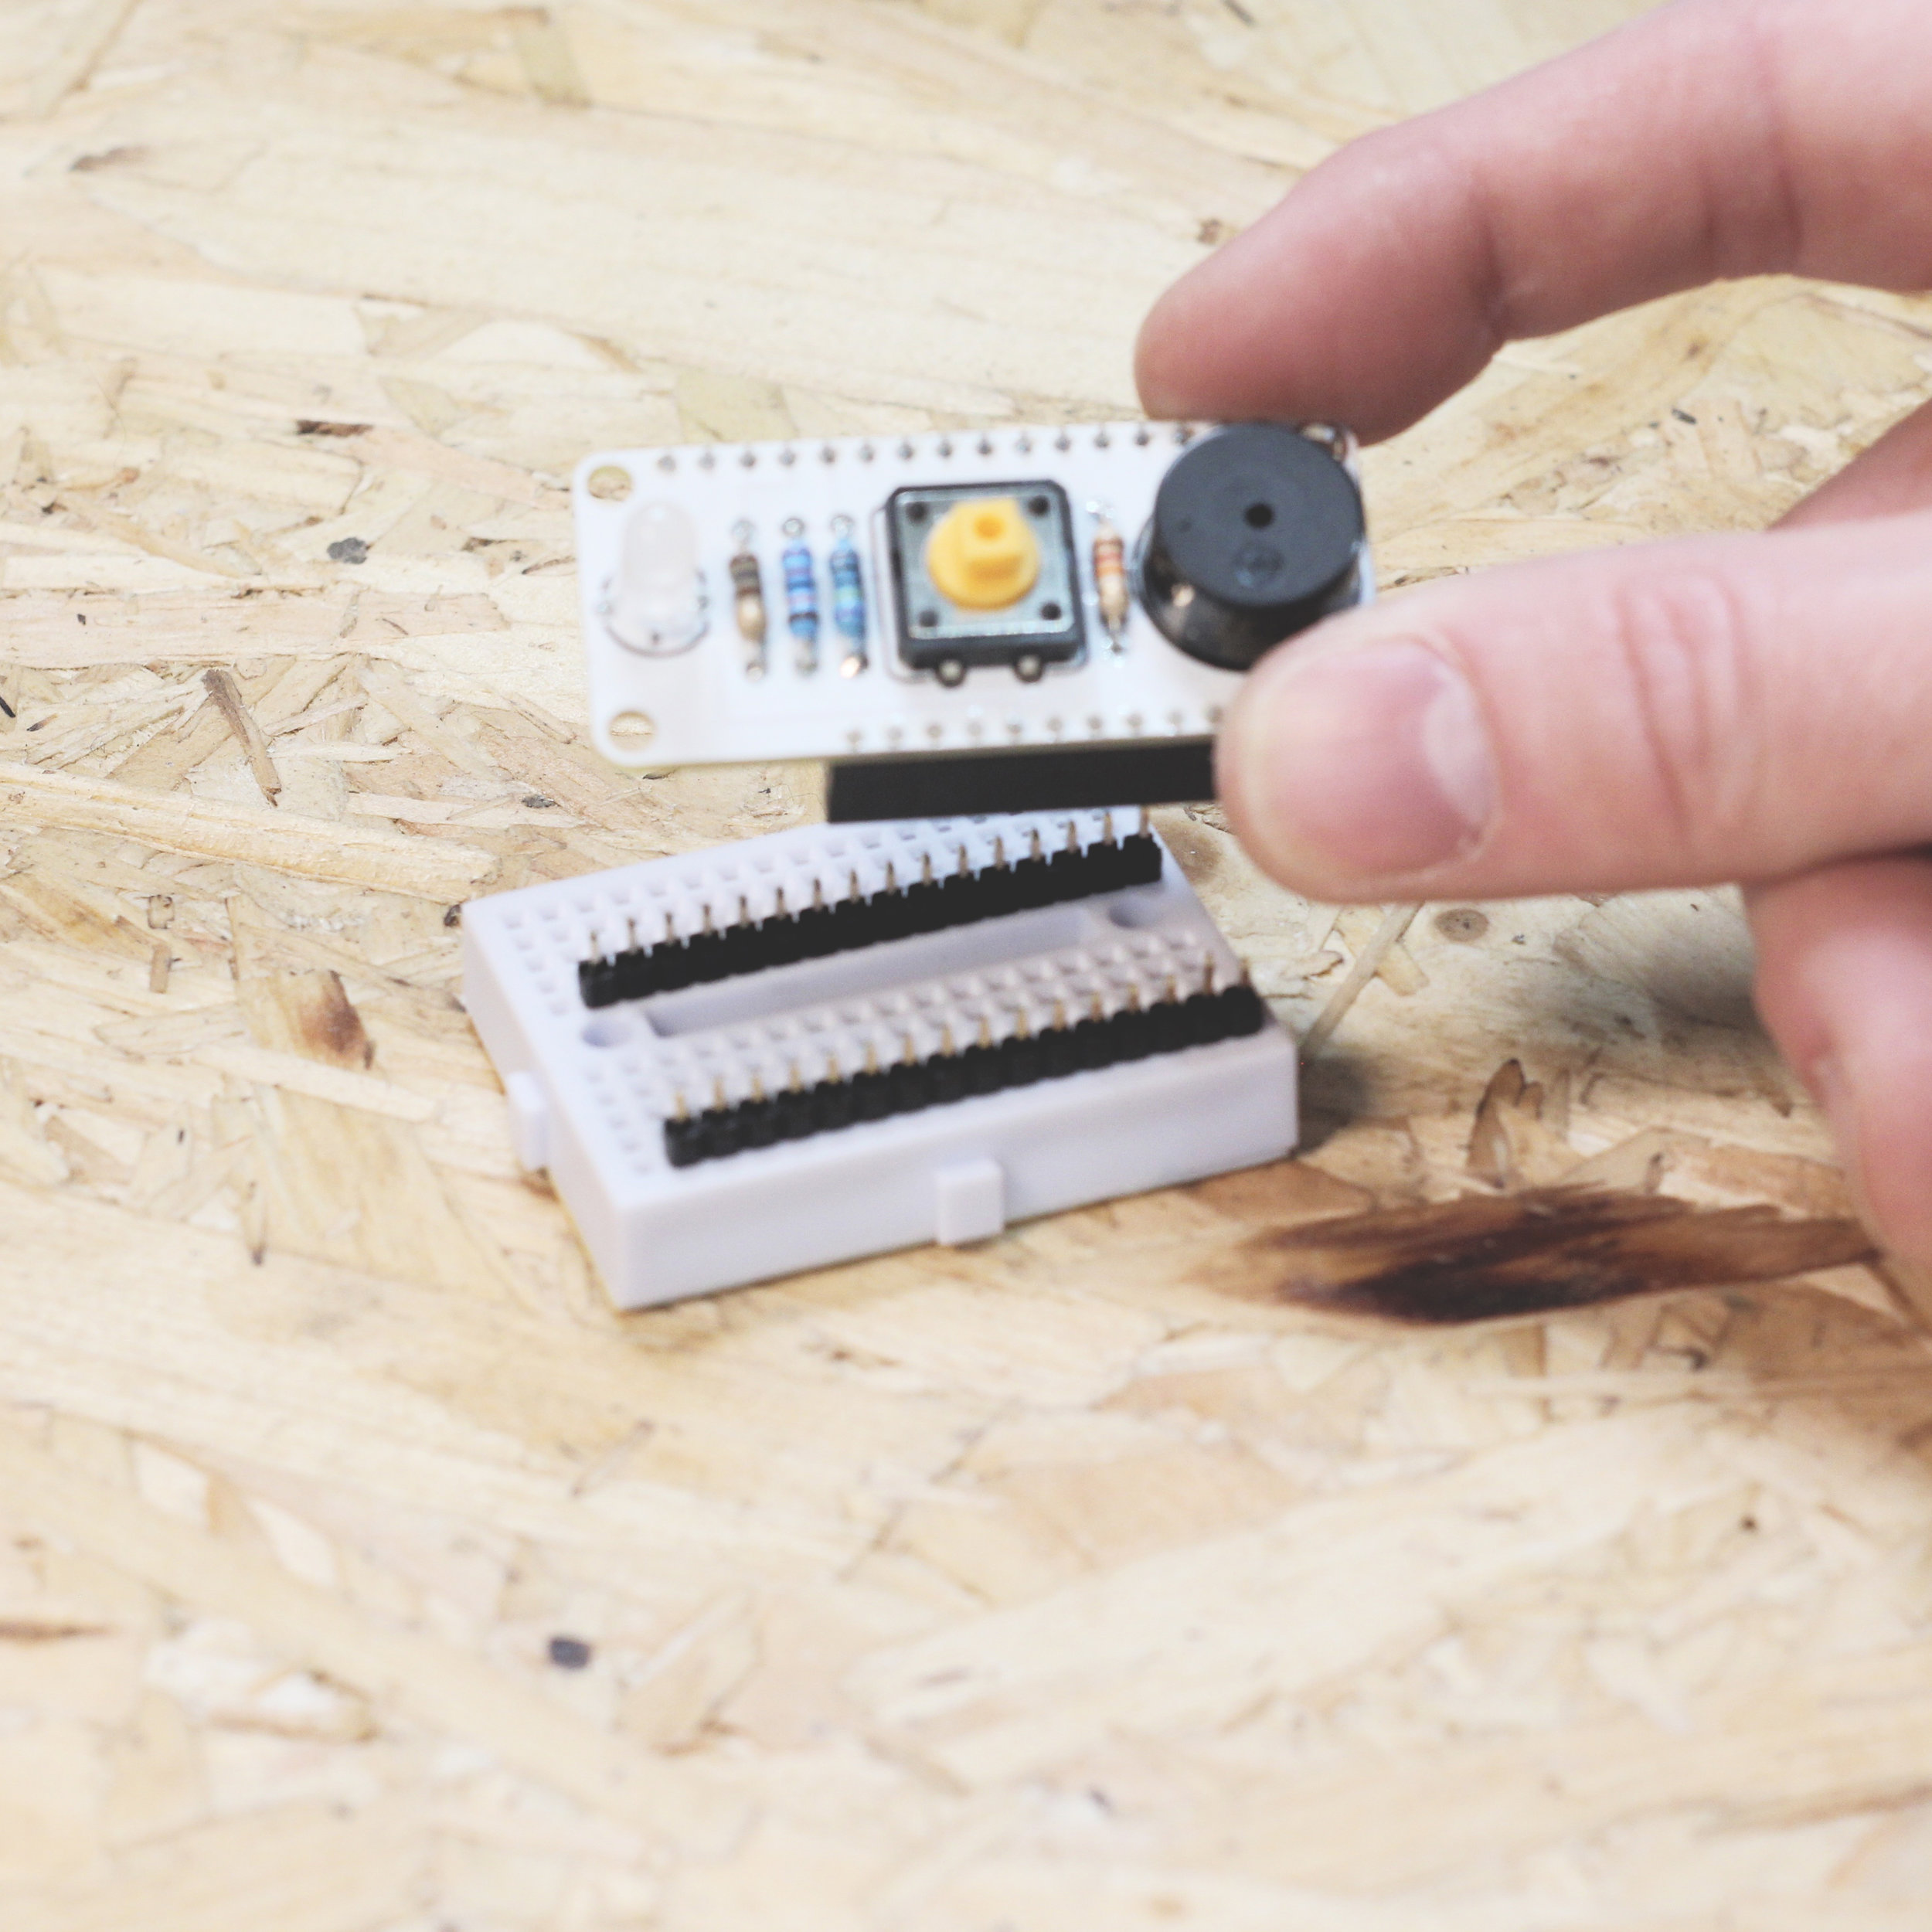 Remove Push-Thru button from the breadboard